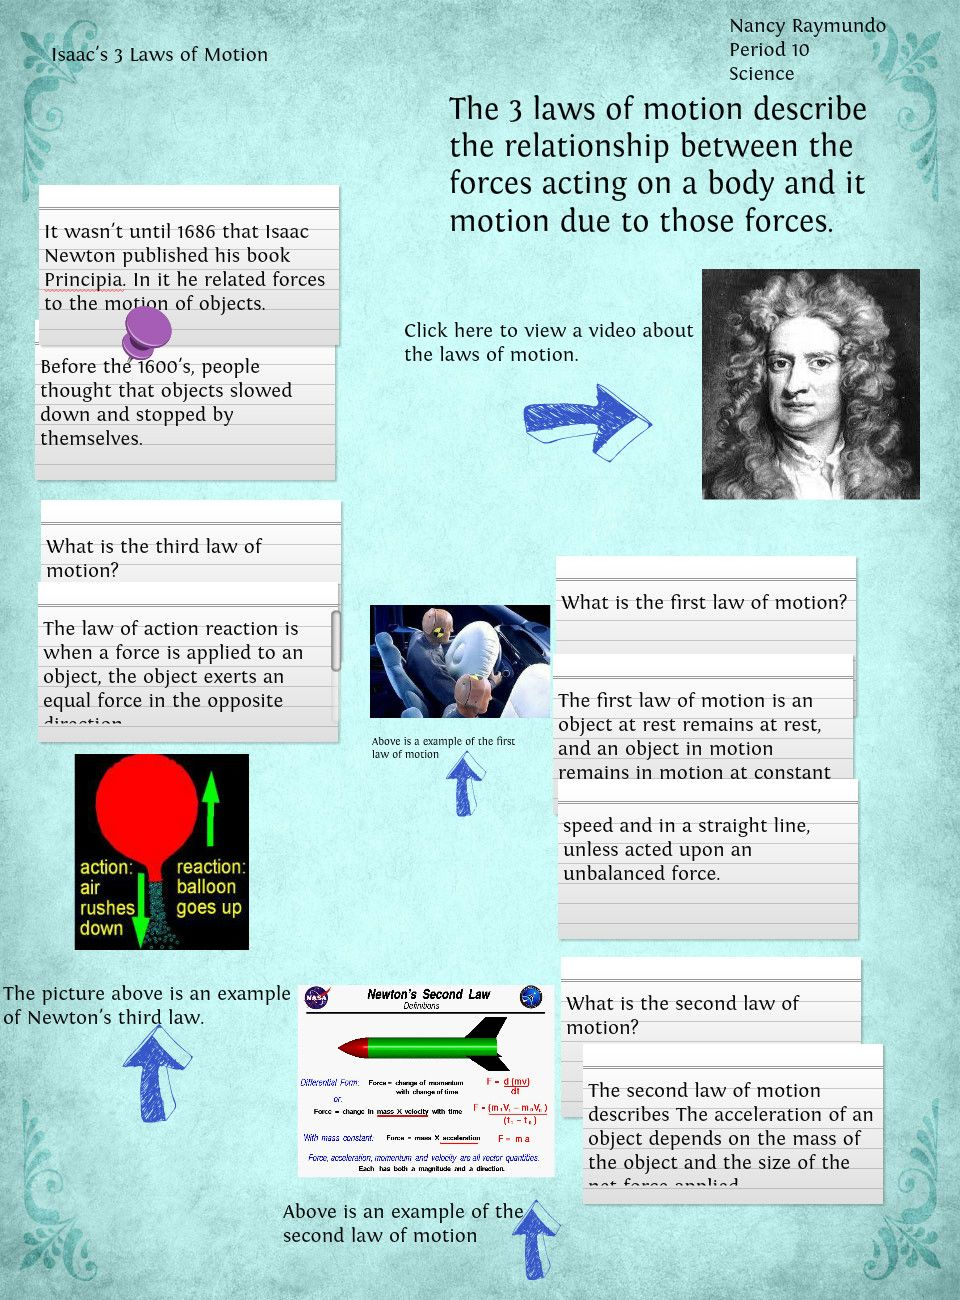 understanding the three laws of graphical solutions in newtons laws As mentioned earlier, johannes kepler had devised three laws of planetary motion without the use of newton's law of gravity they are, it turns out, fully consistent and, in fact, one can prove all of kepler's laws by applying newton's theory of universal gravitation.